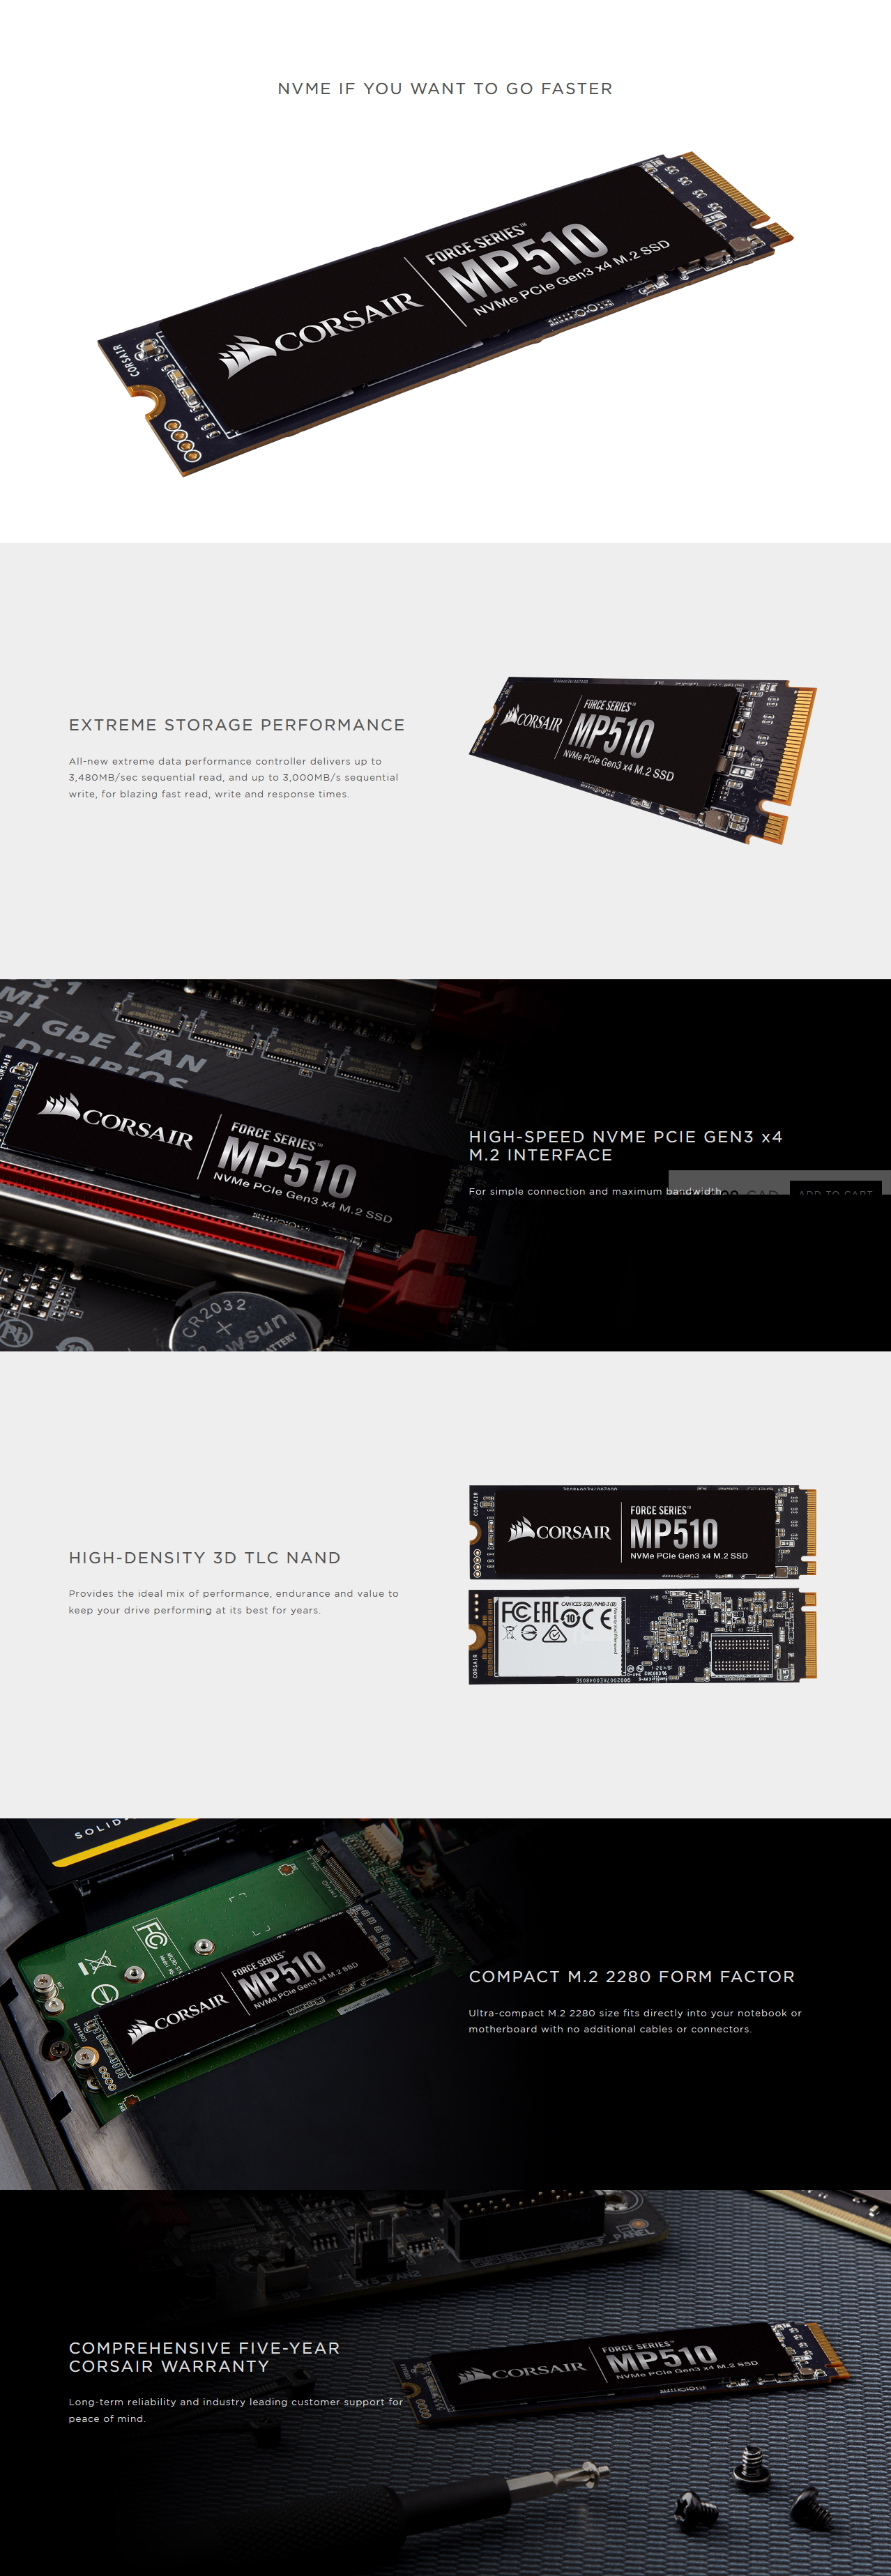 A large marketing image providing additional information about the product Corsair Force MP510 240GB M.2 NVMe PCIe Gen3 SSD - Additional alt info not provided